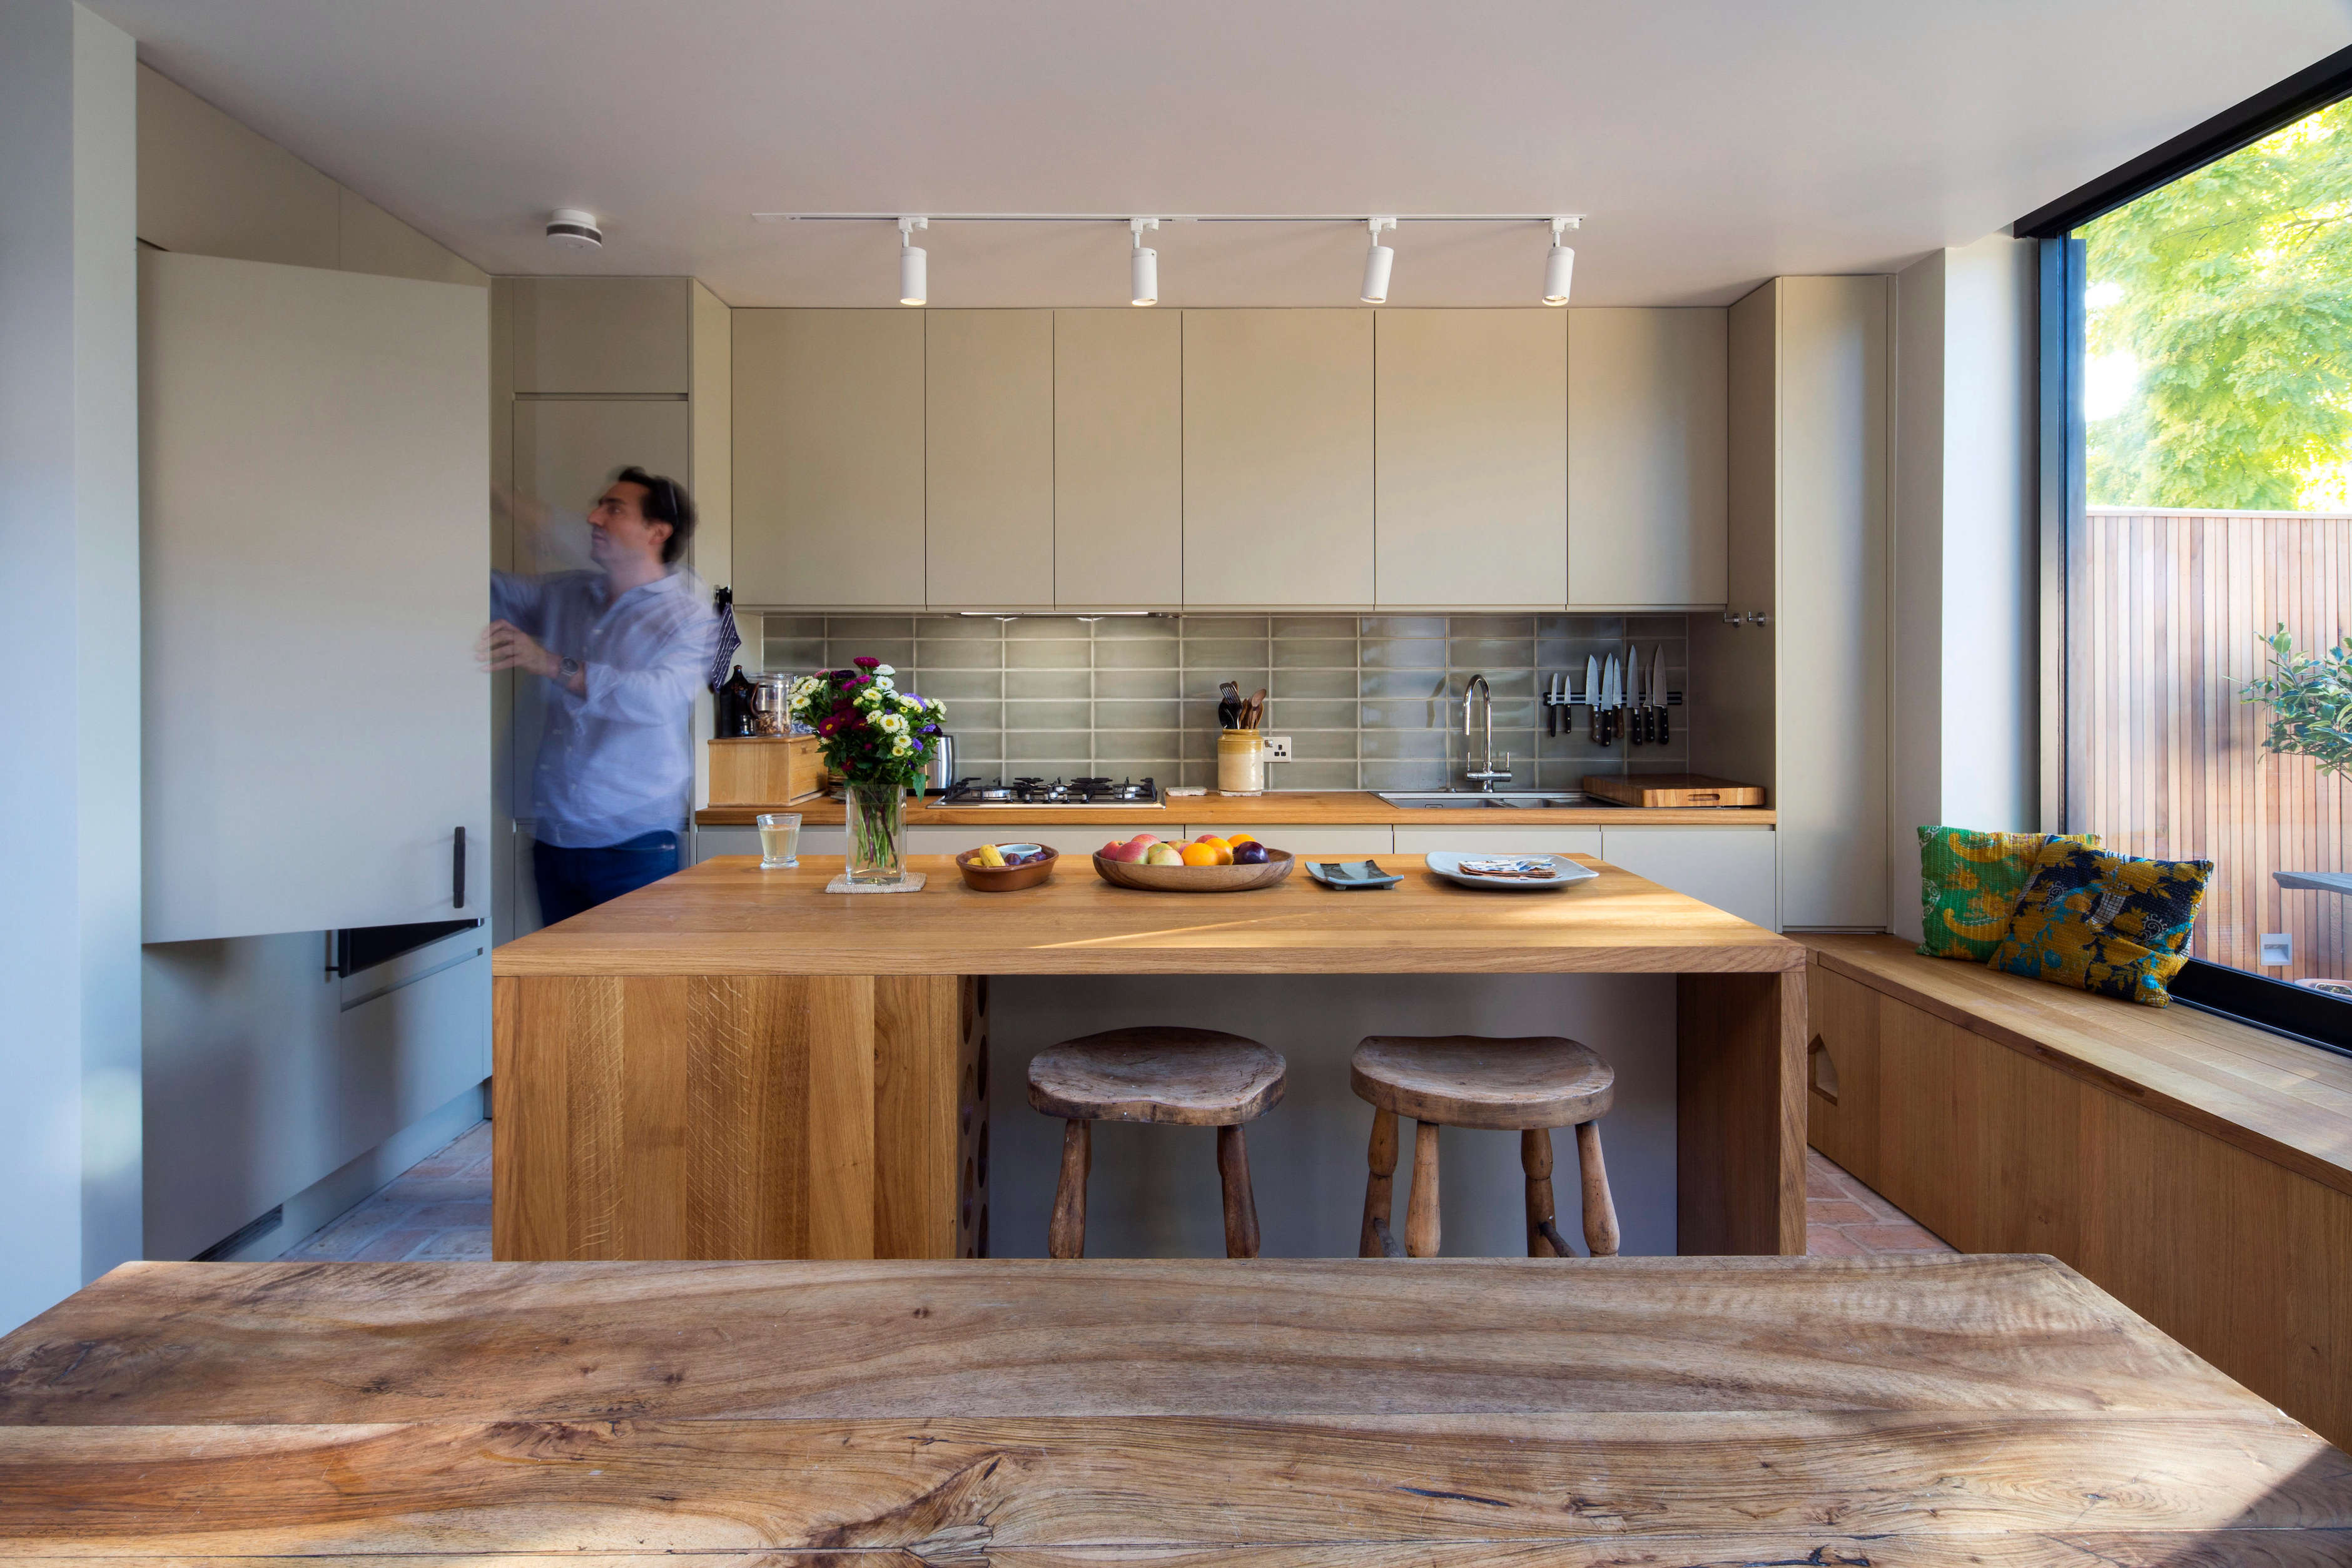 Kitchen of the Week: An Architect\'s Labor-of-Love Kitchen ...